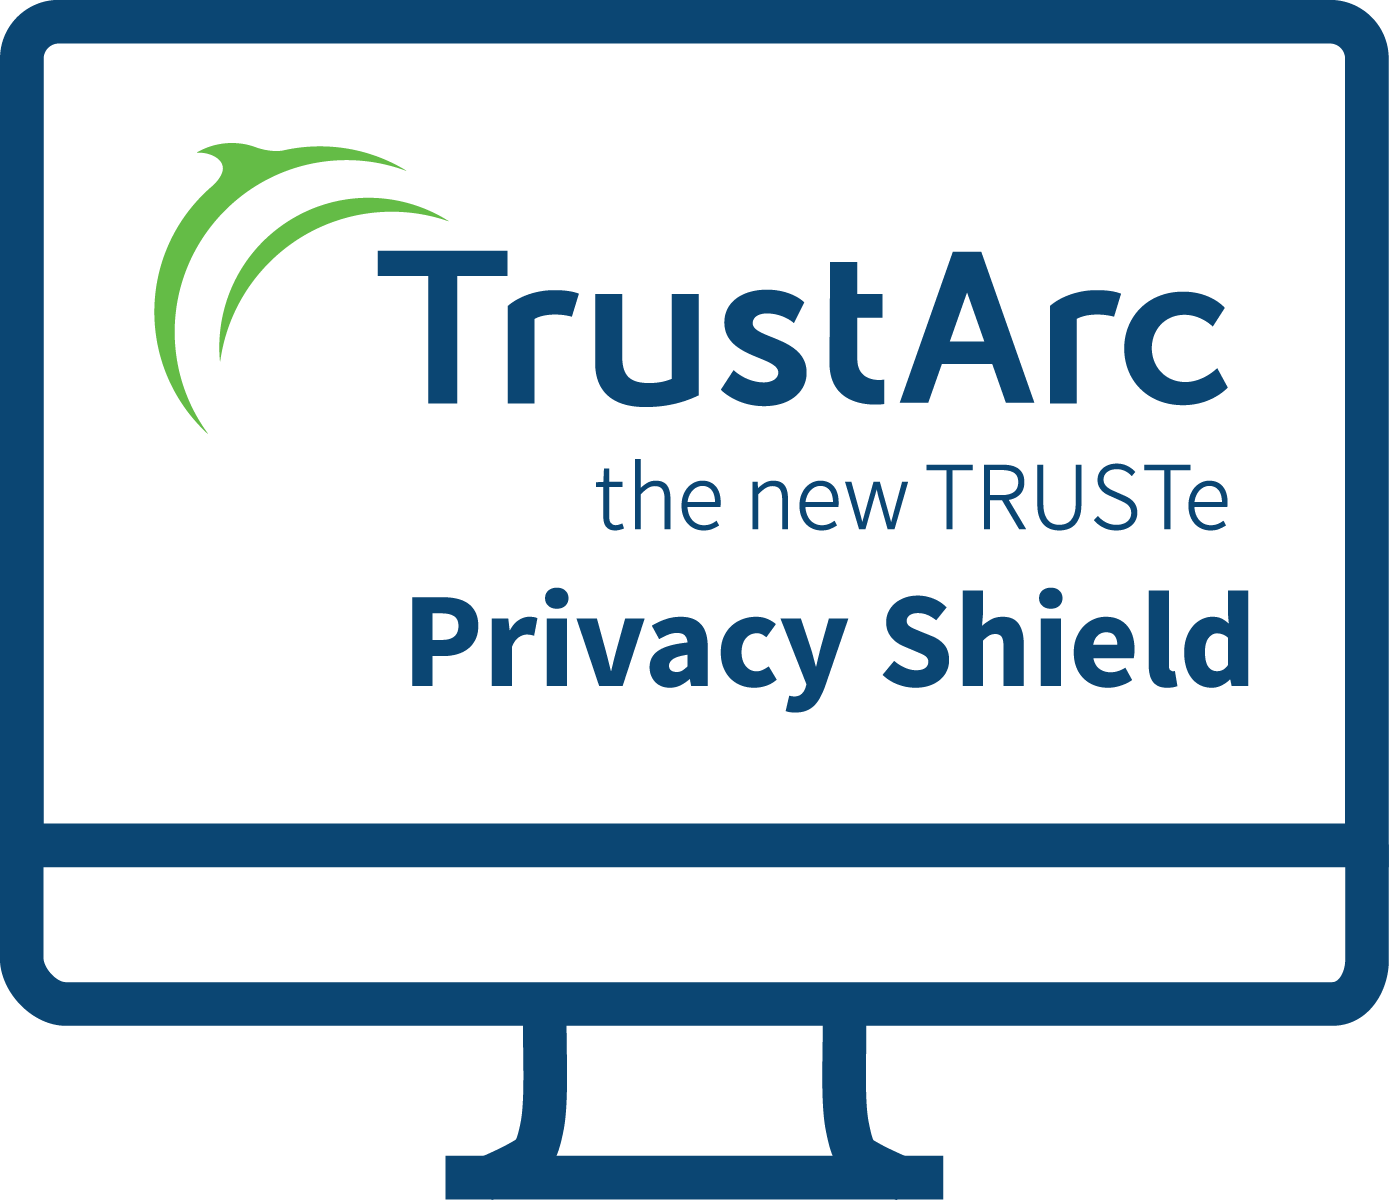 Privacy Shield Program Continues to Demonstrate High Interest